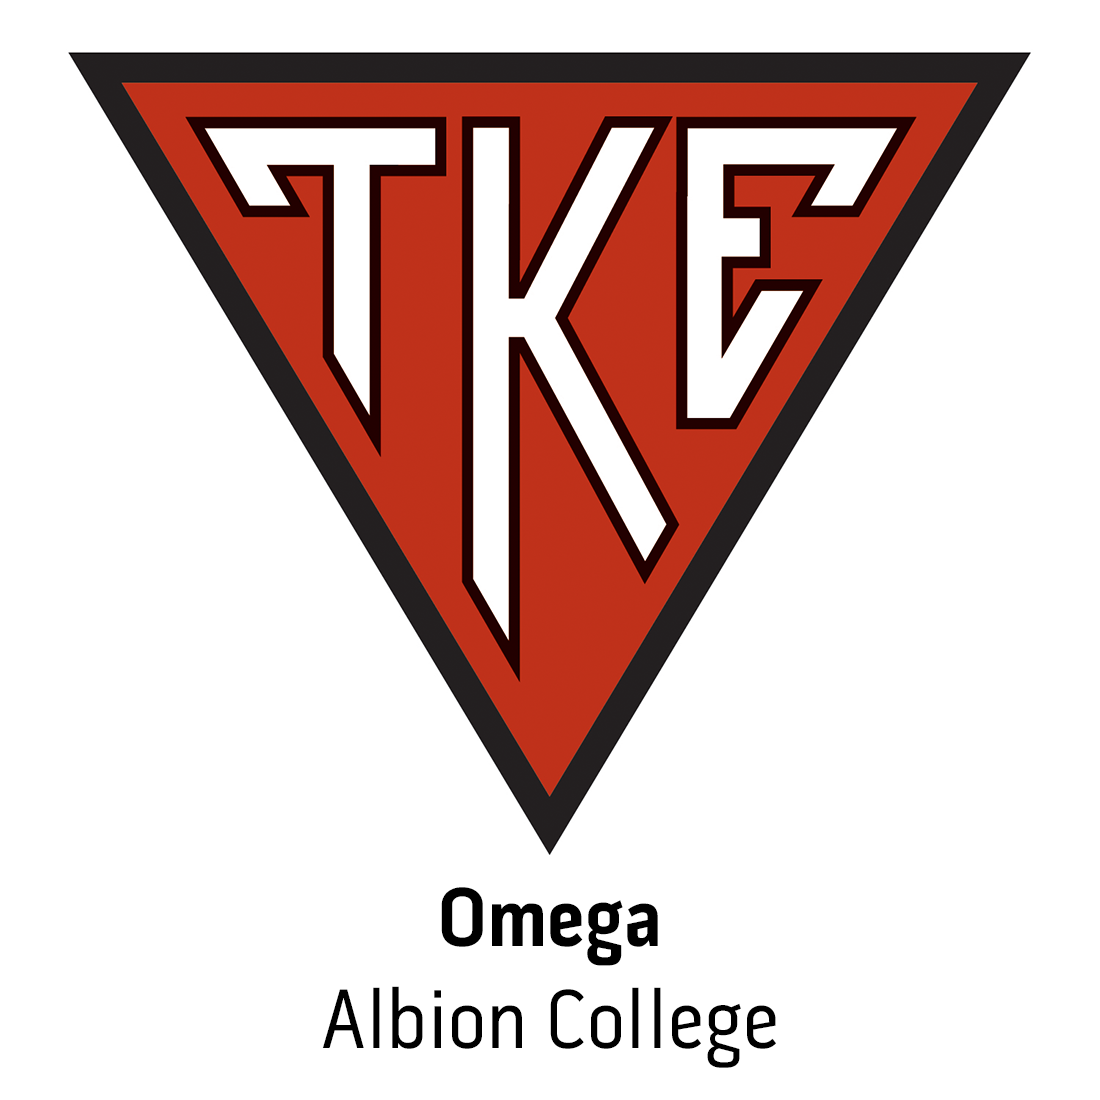 Omega Chapter at Albion College